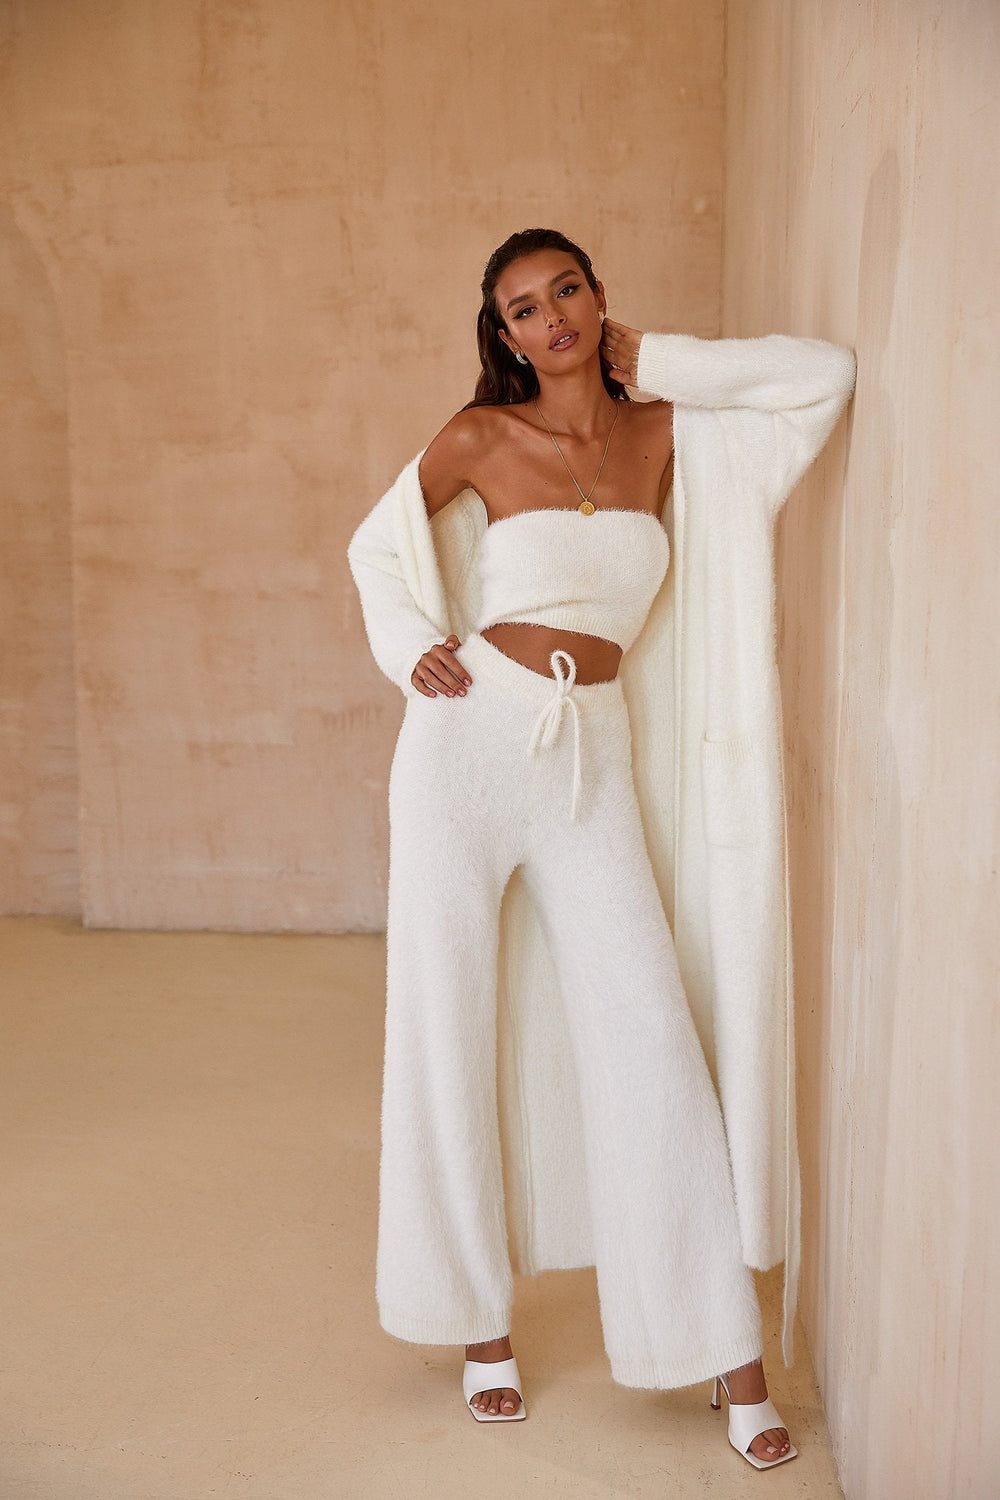 Kelly Robe - White Fluffy Long Sleeve Full Length Lounge Robe